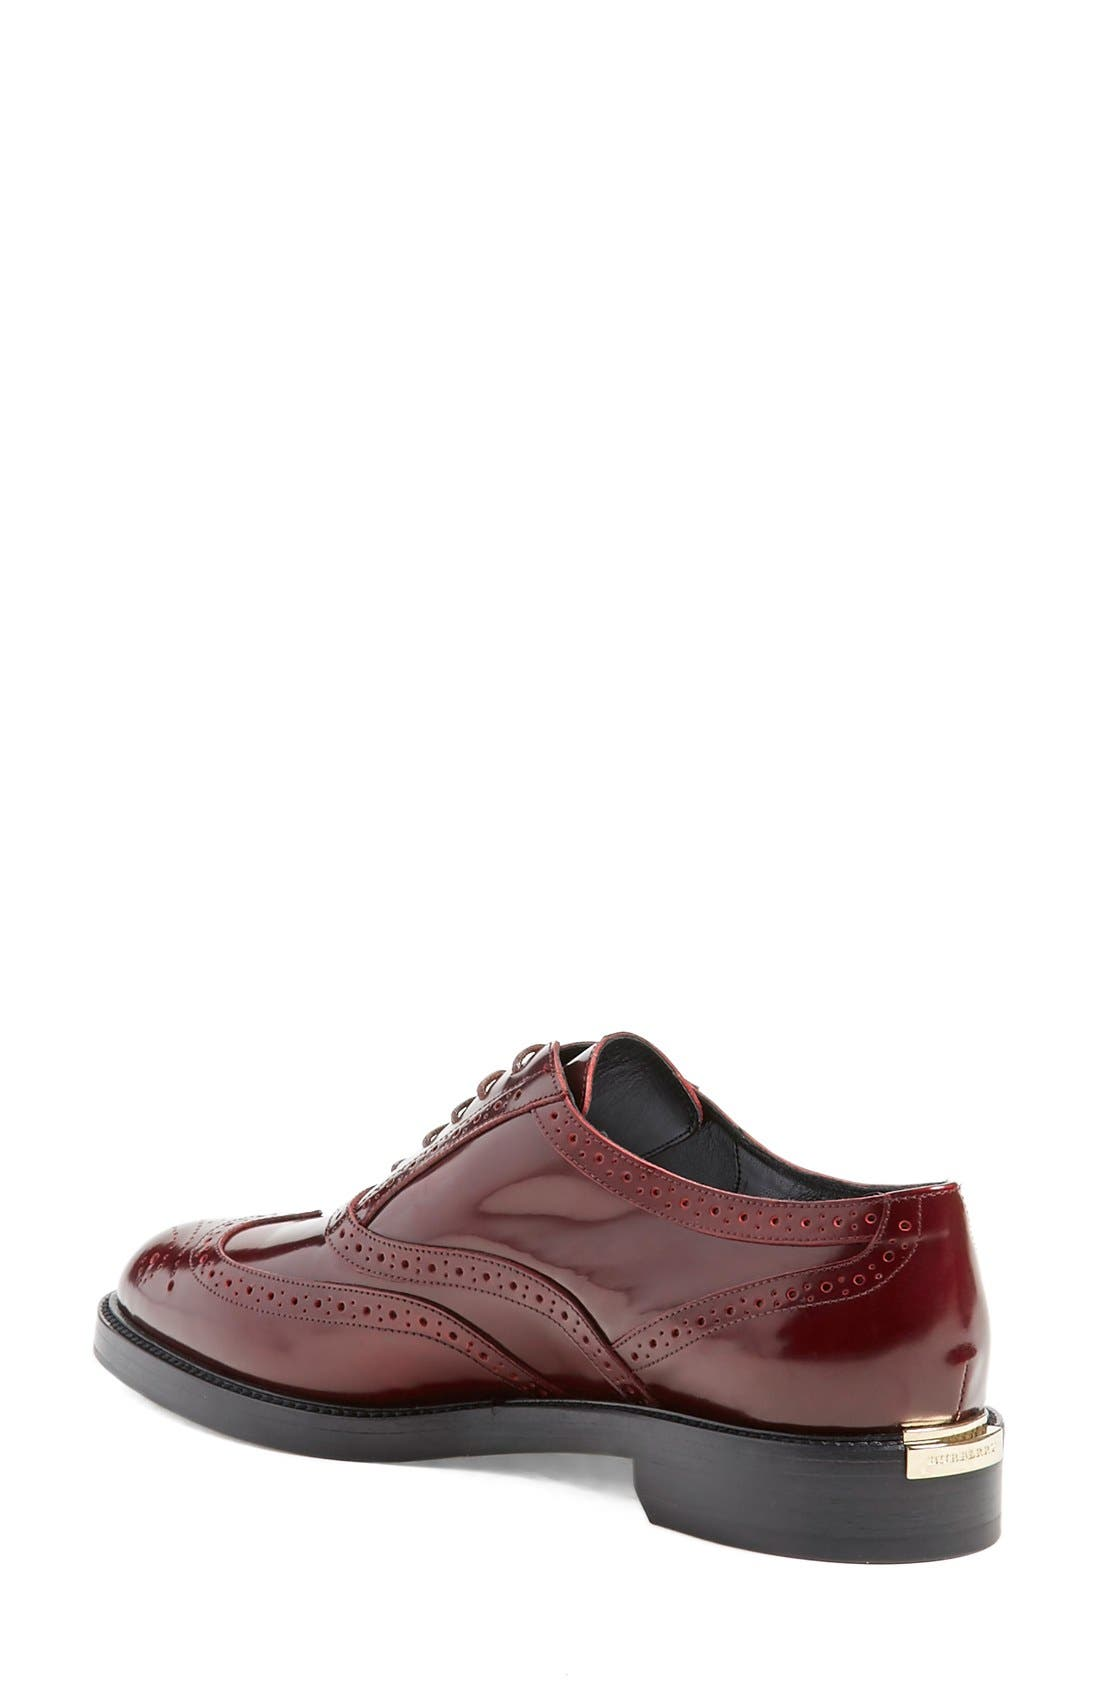 Alternate Image 2  - Burberry 'Gennie' Lace-Up Oxford (Women)